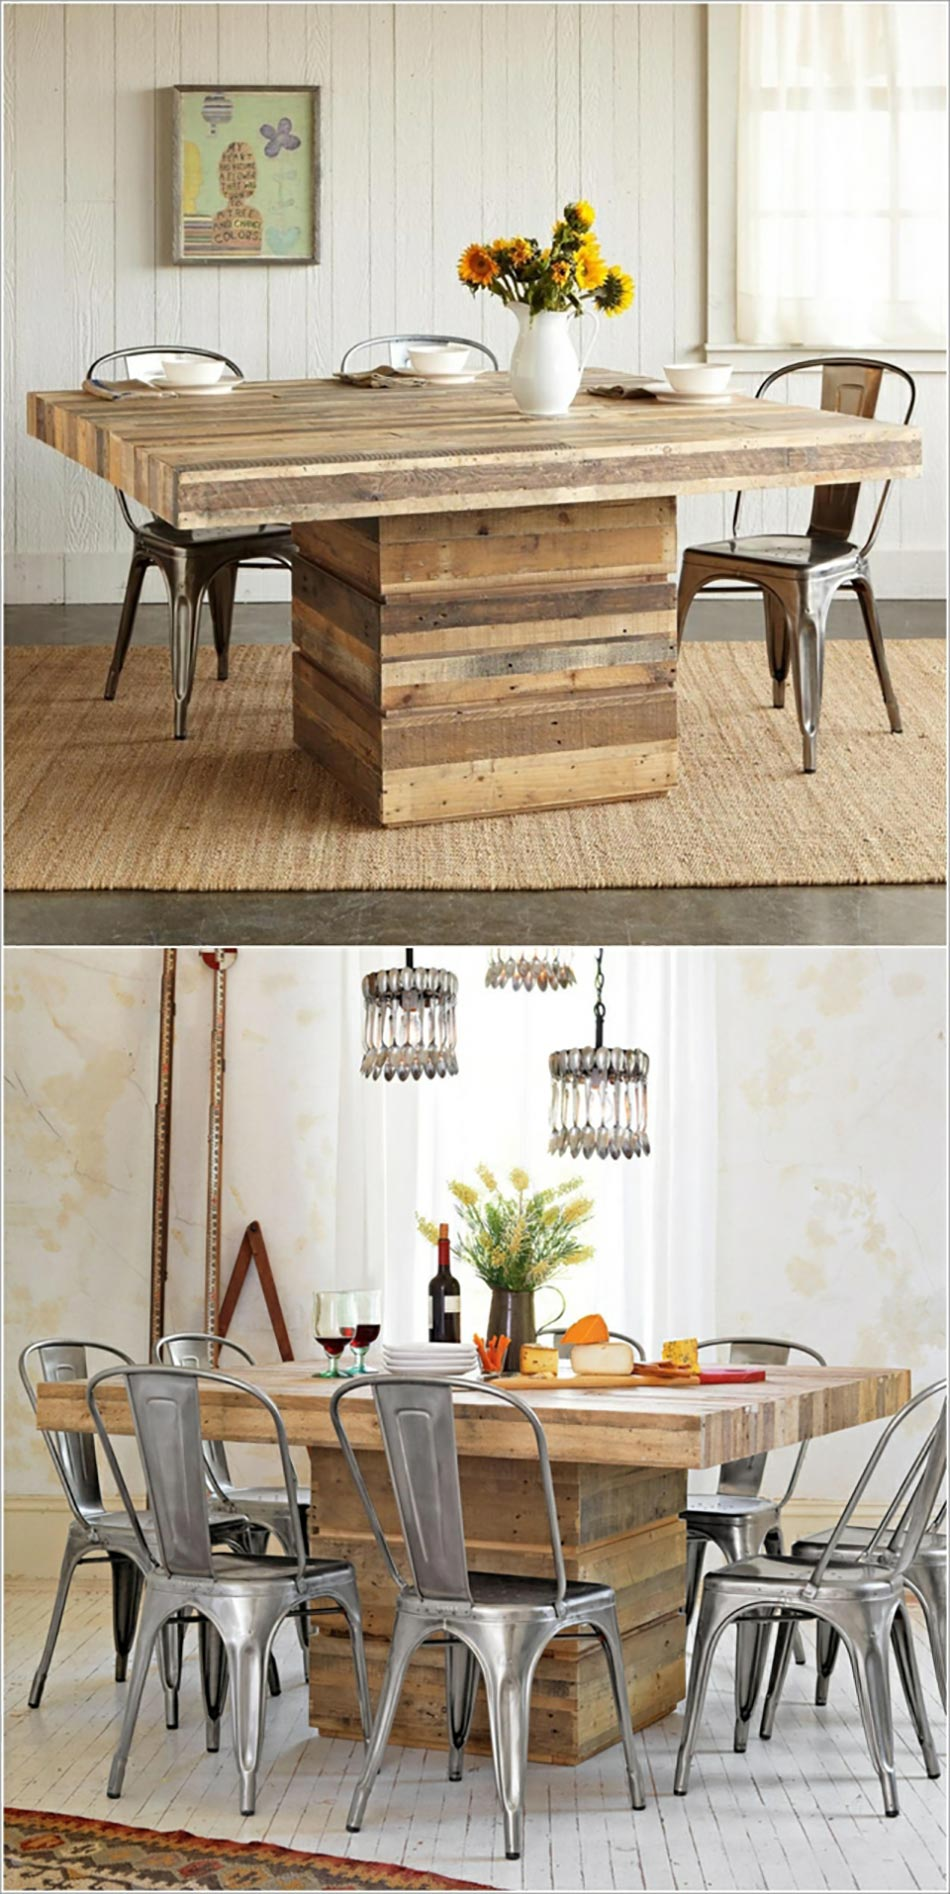 Table originale salle manger - Table a manger originale ...